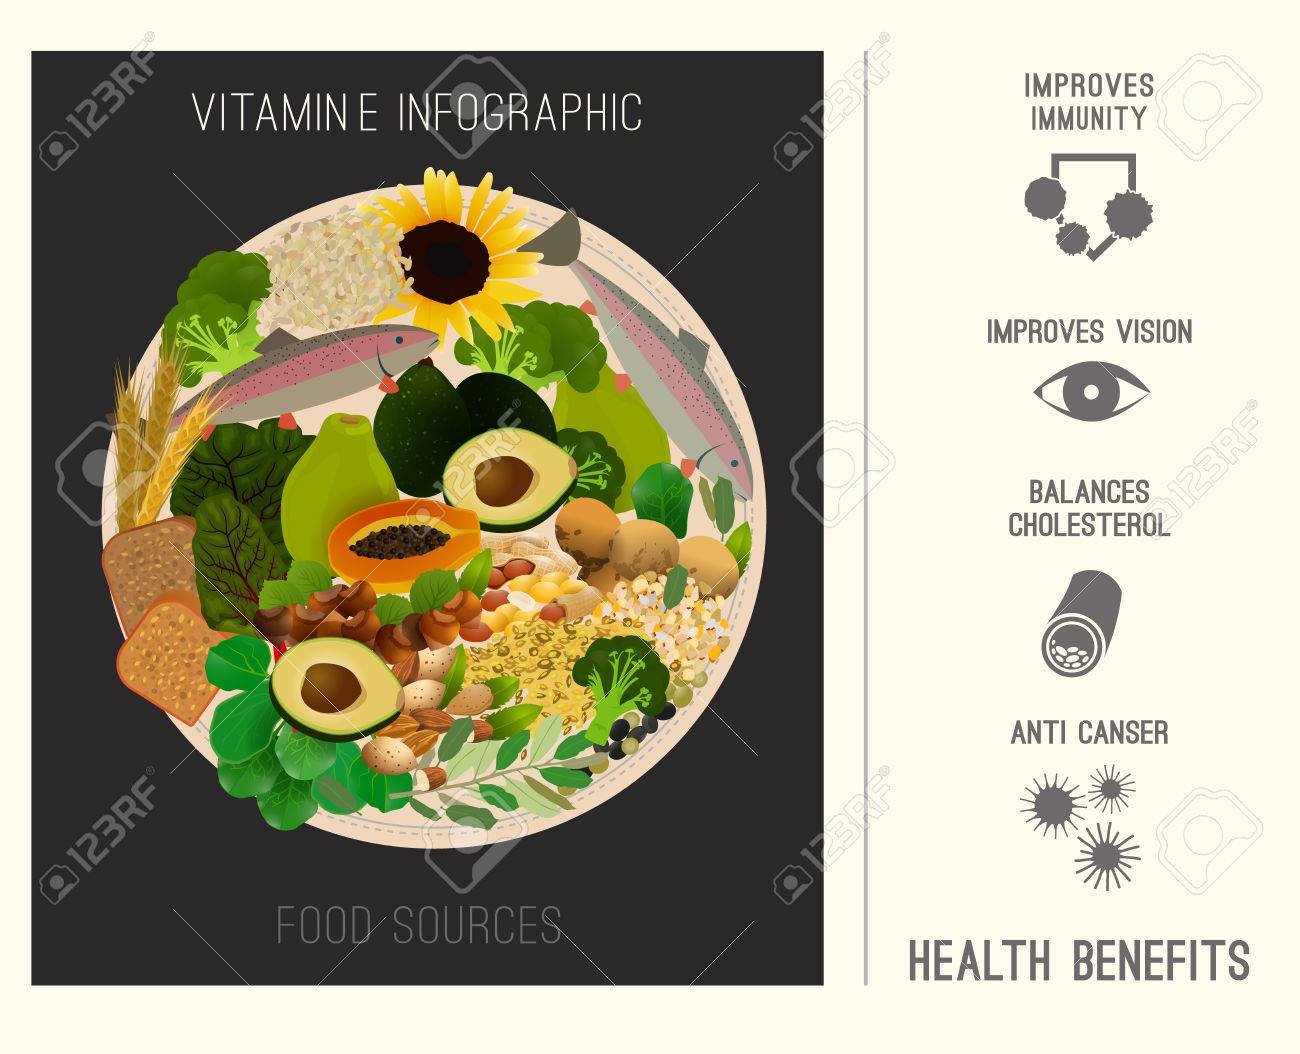 Vitamin e infographics vector illustration foods containing foods containing vitamin e on a round plate source of vitamin e nuts corn vegetables fish oils with health benefits tips workwithnaturefo